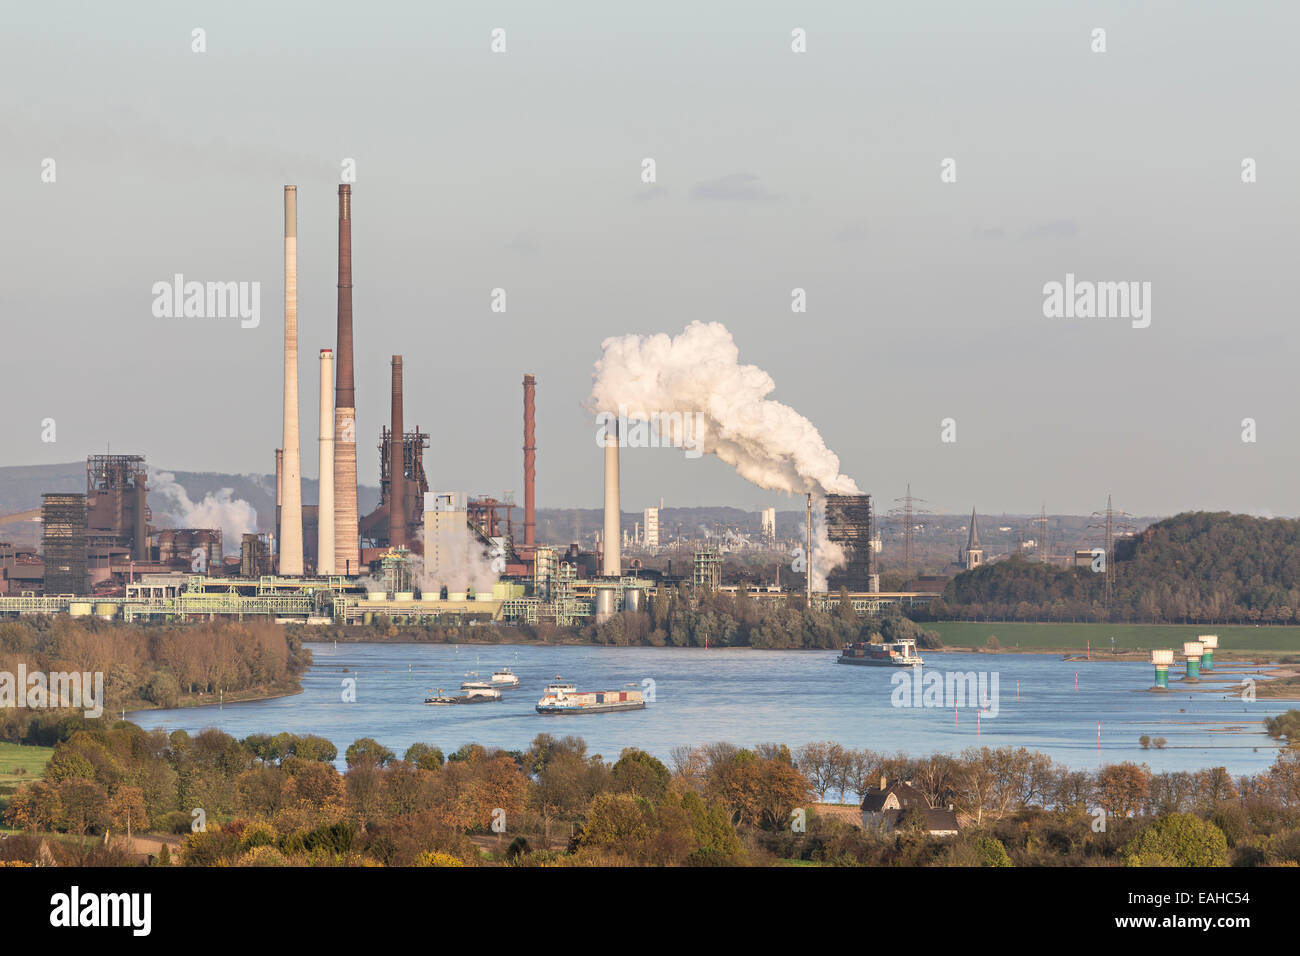 Steaming Coking Plant at the river Rhine near Duisburg, Germany with some ships on the river. - Stock Image